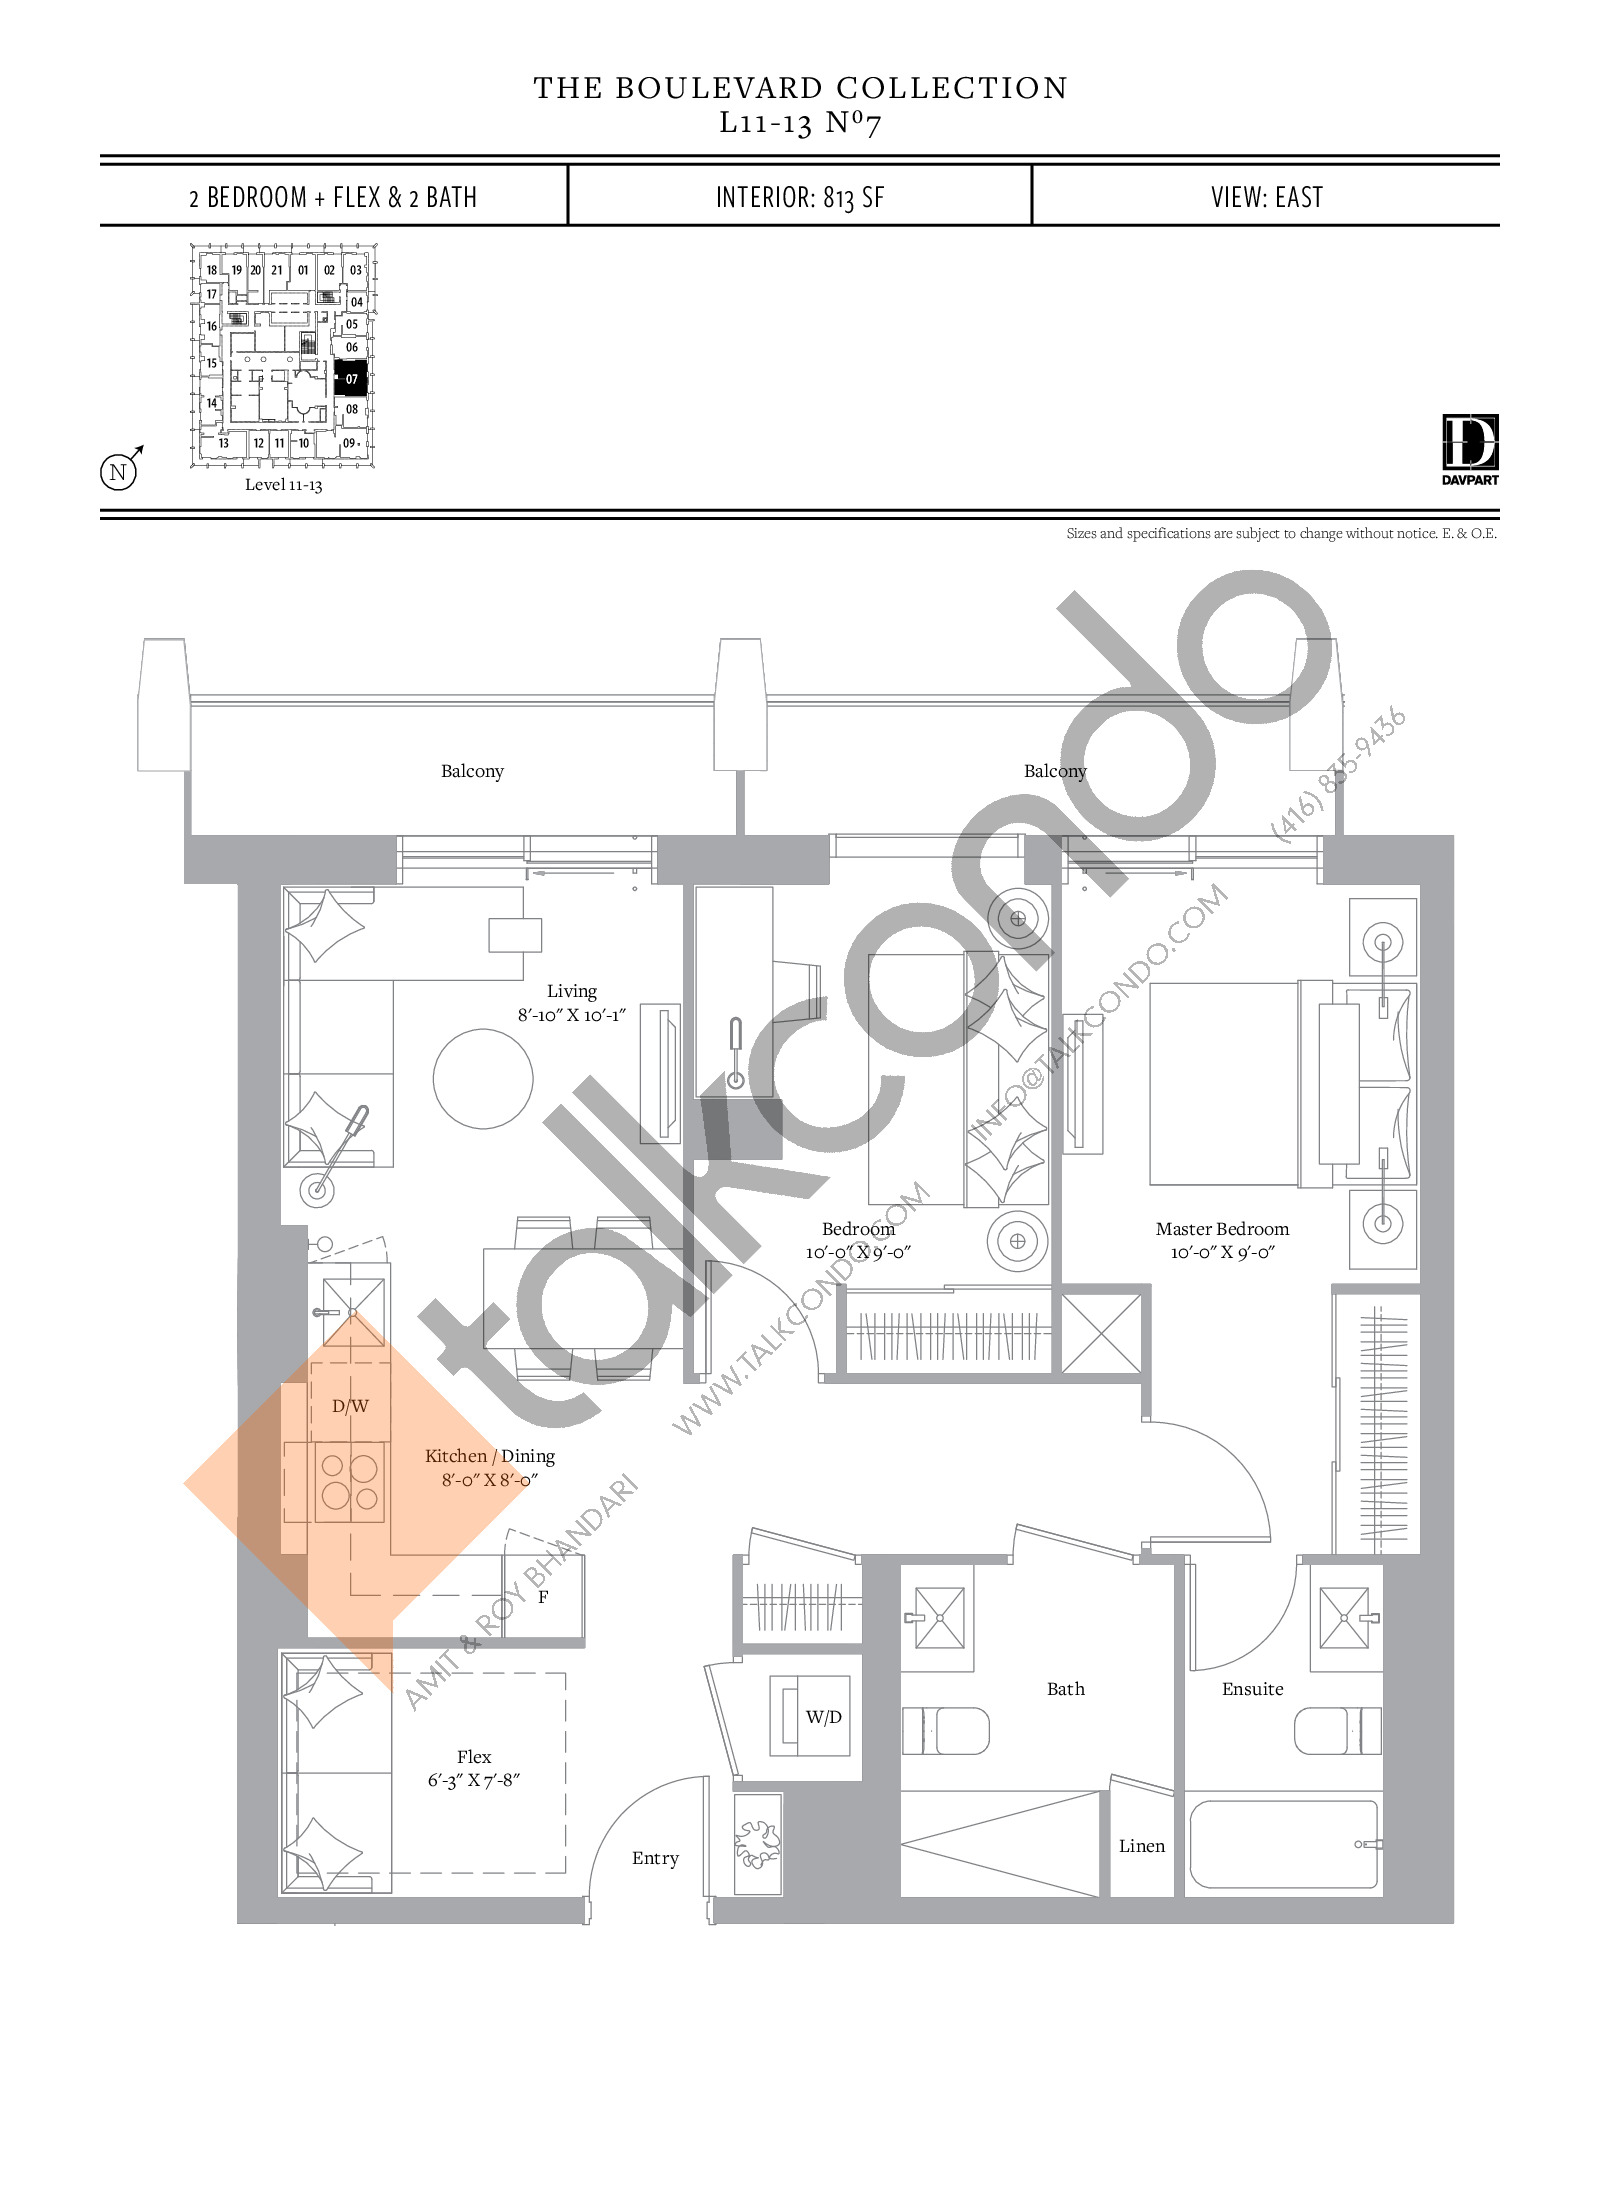 No 7 - The Boulevard Collection Floor Plan at The United Bldg. Condos - 813 sq.ft